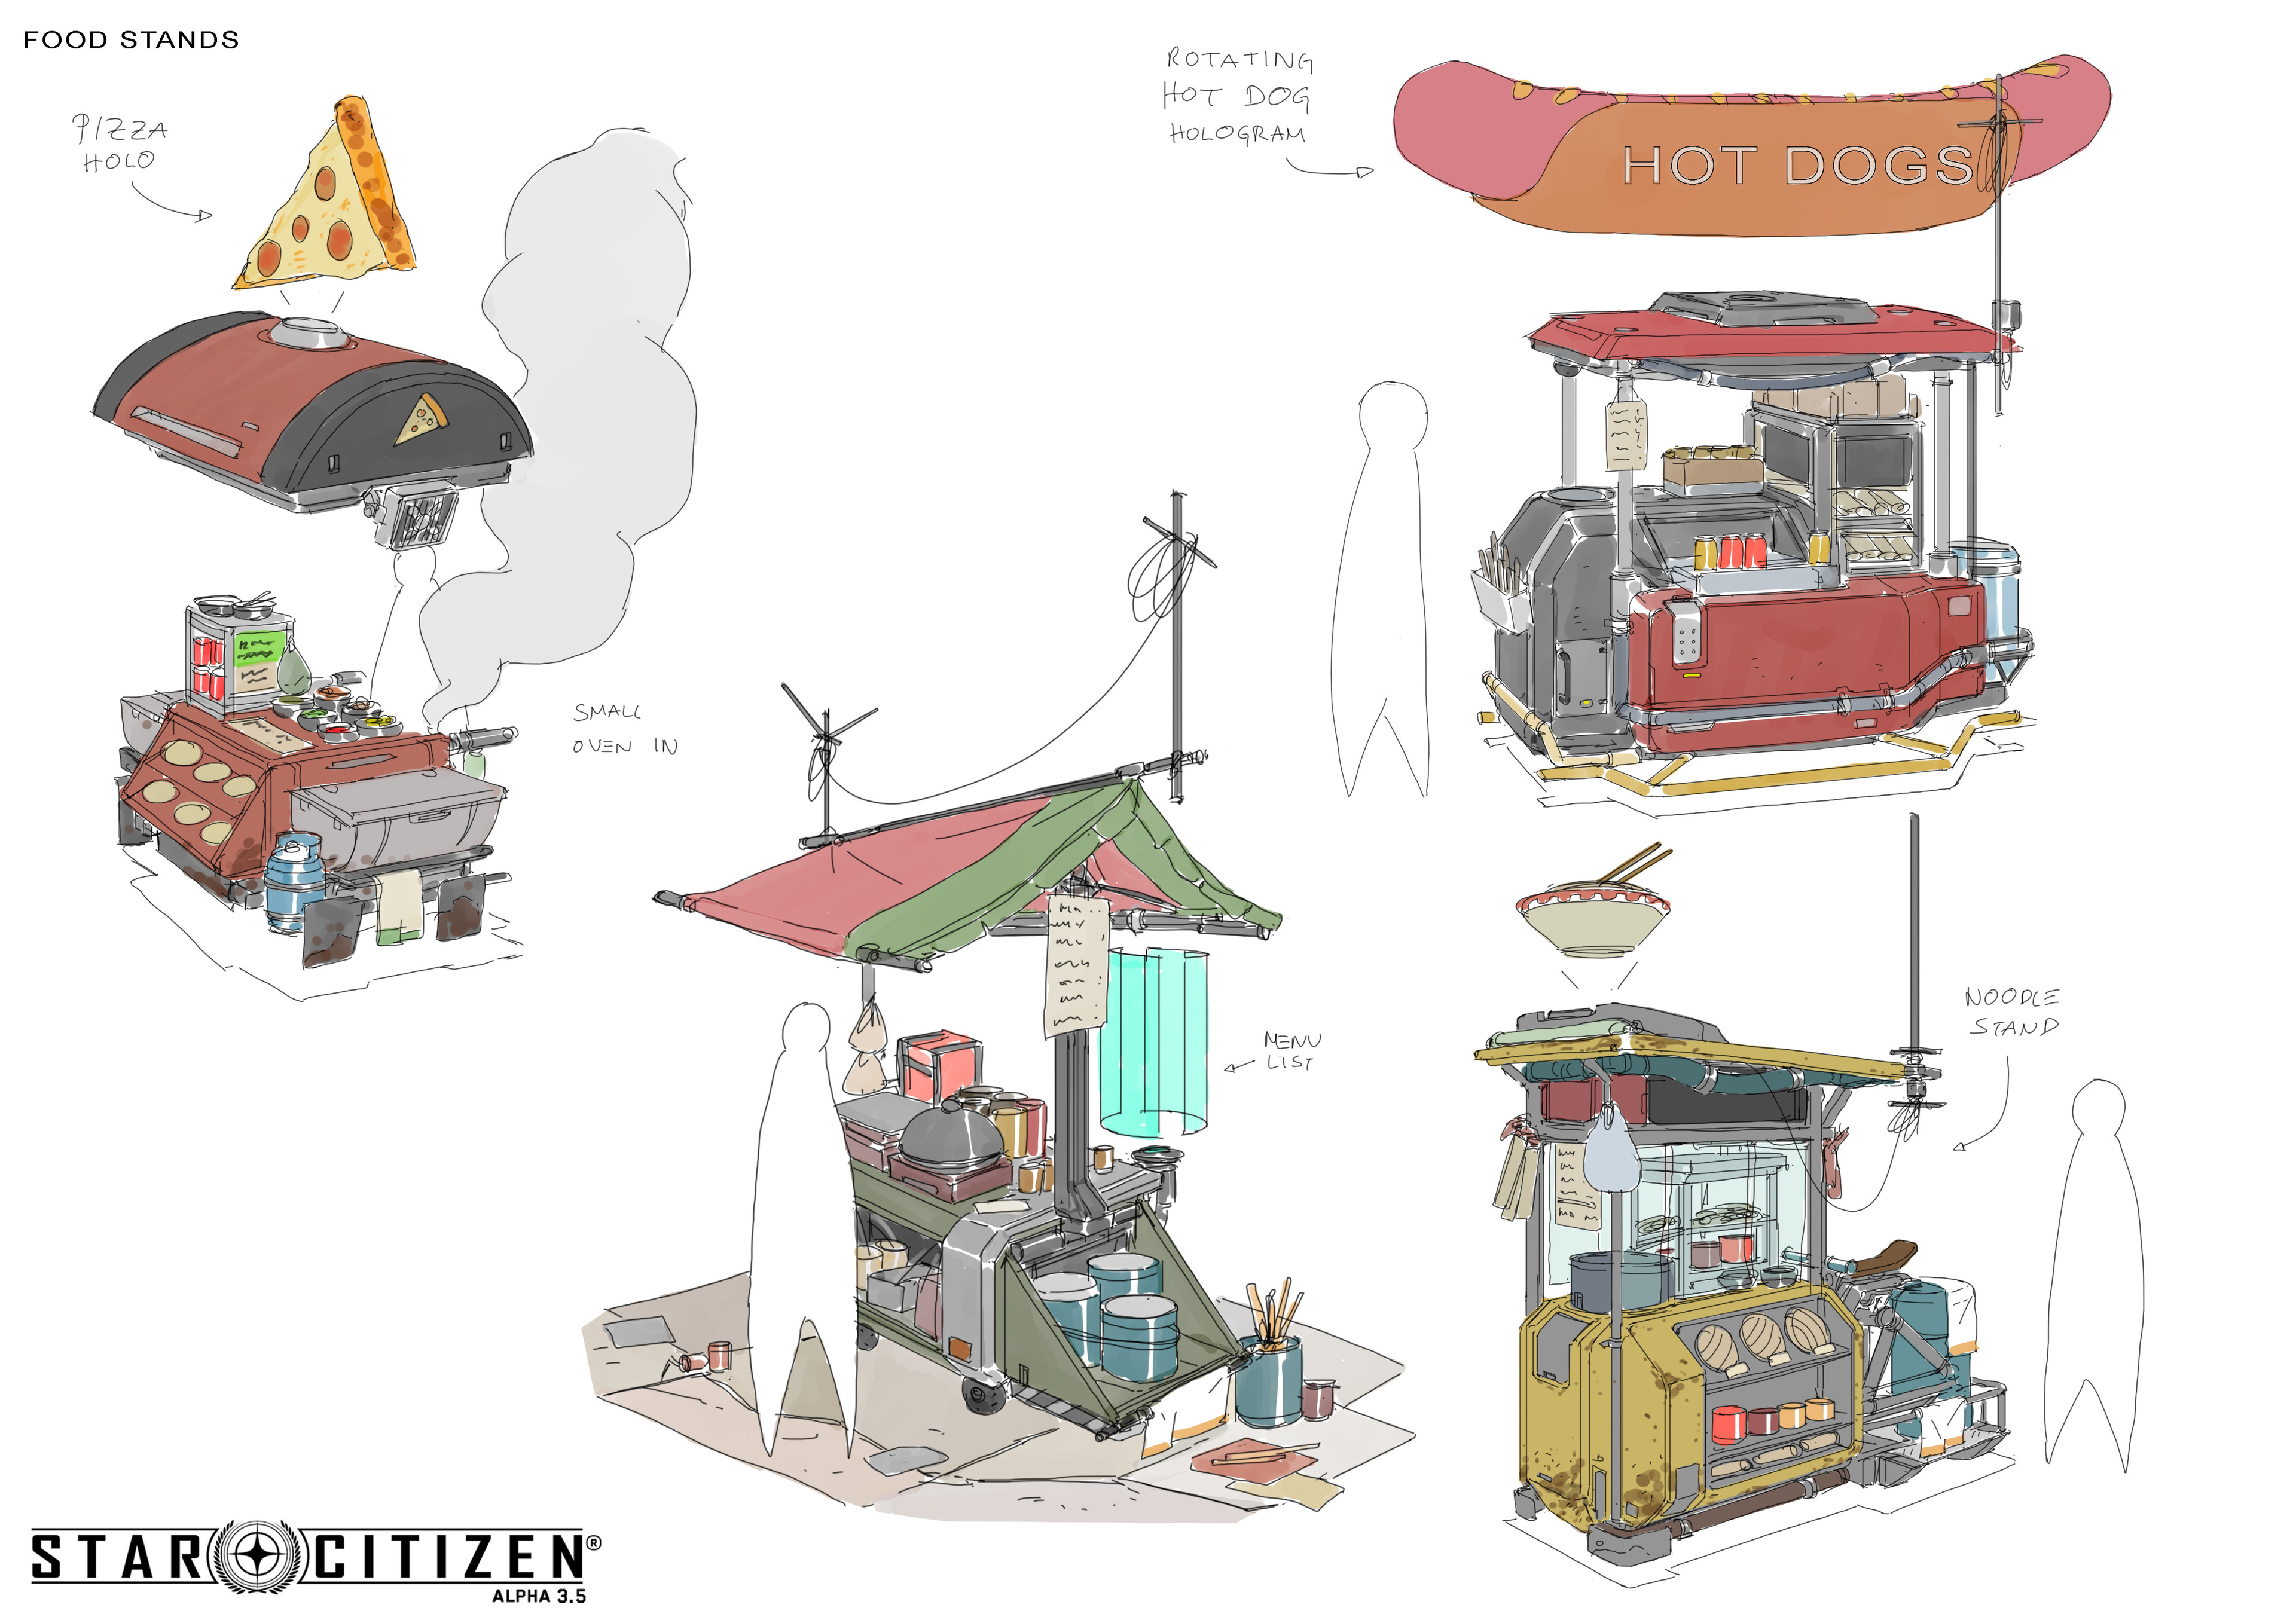 hot dog stands